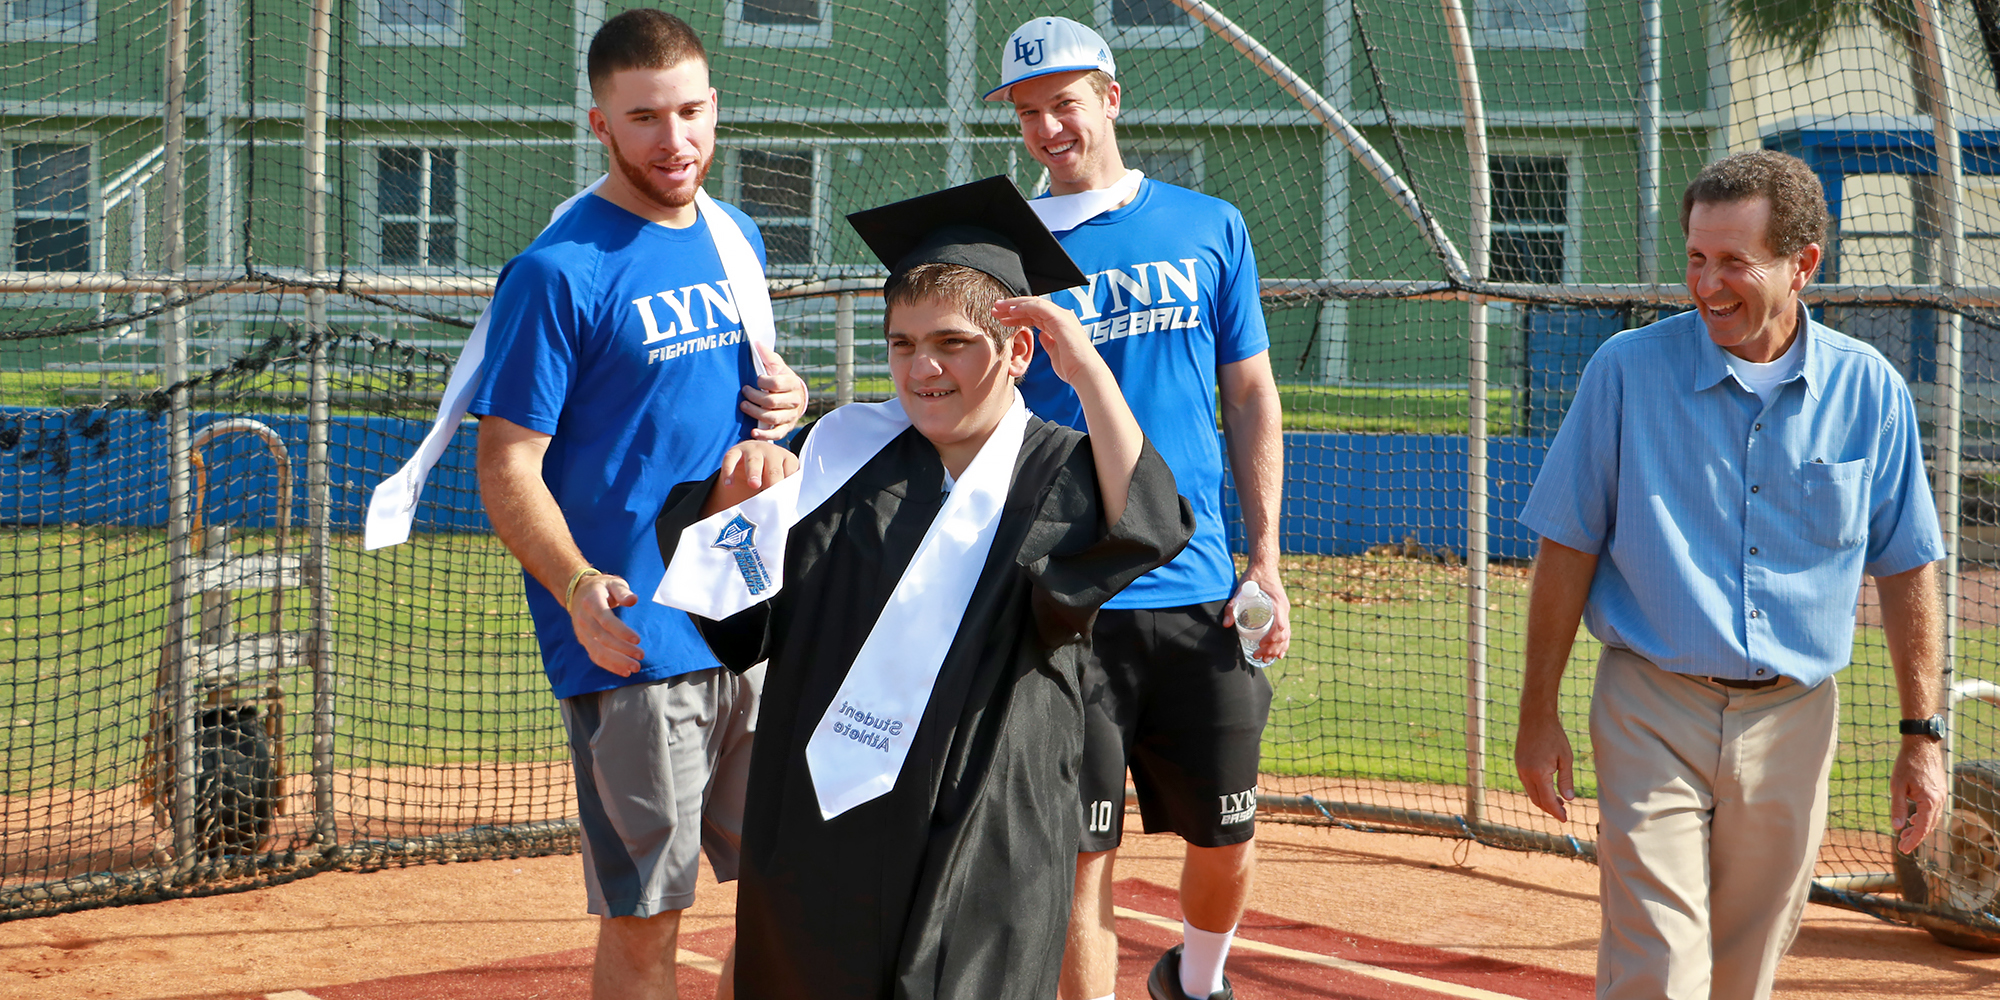 Lynn Baseball Graduates Ari Cohen Through Team IMPACT Program